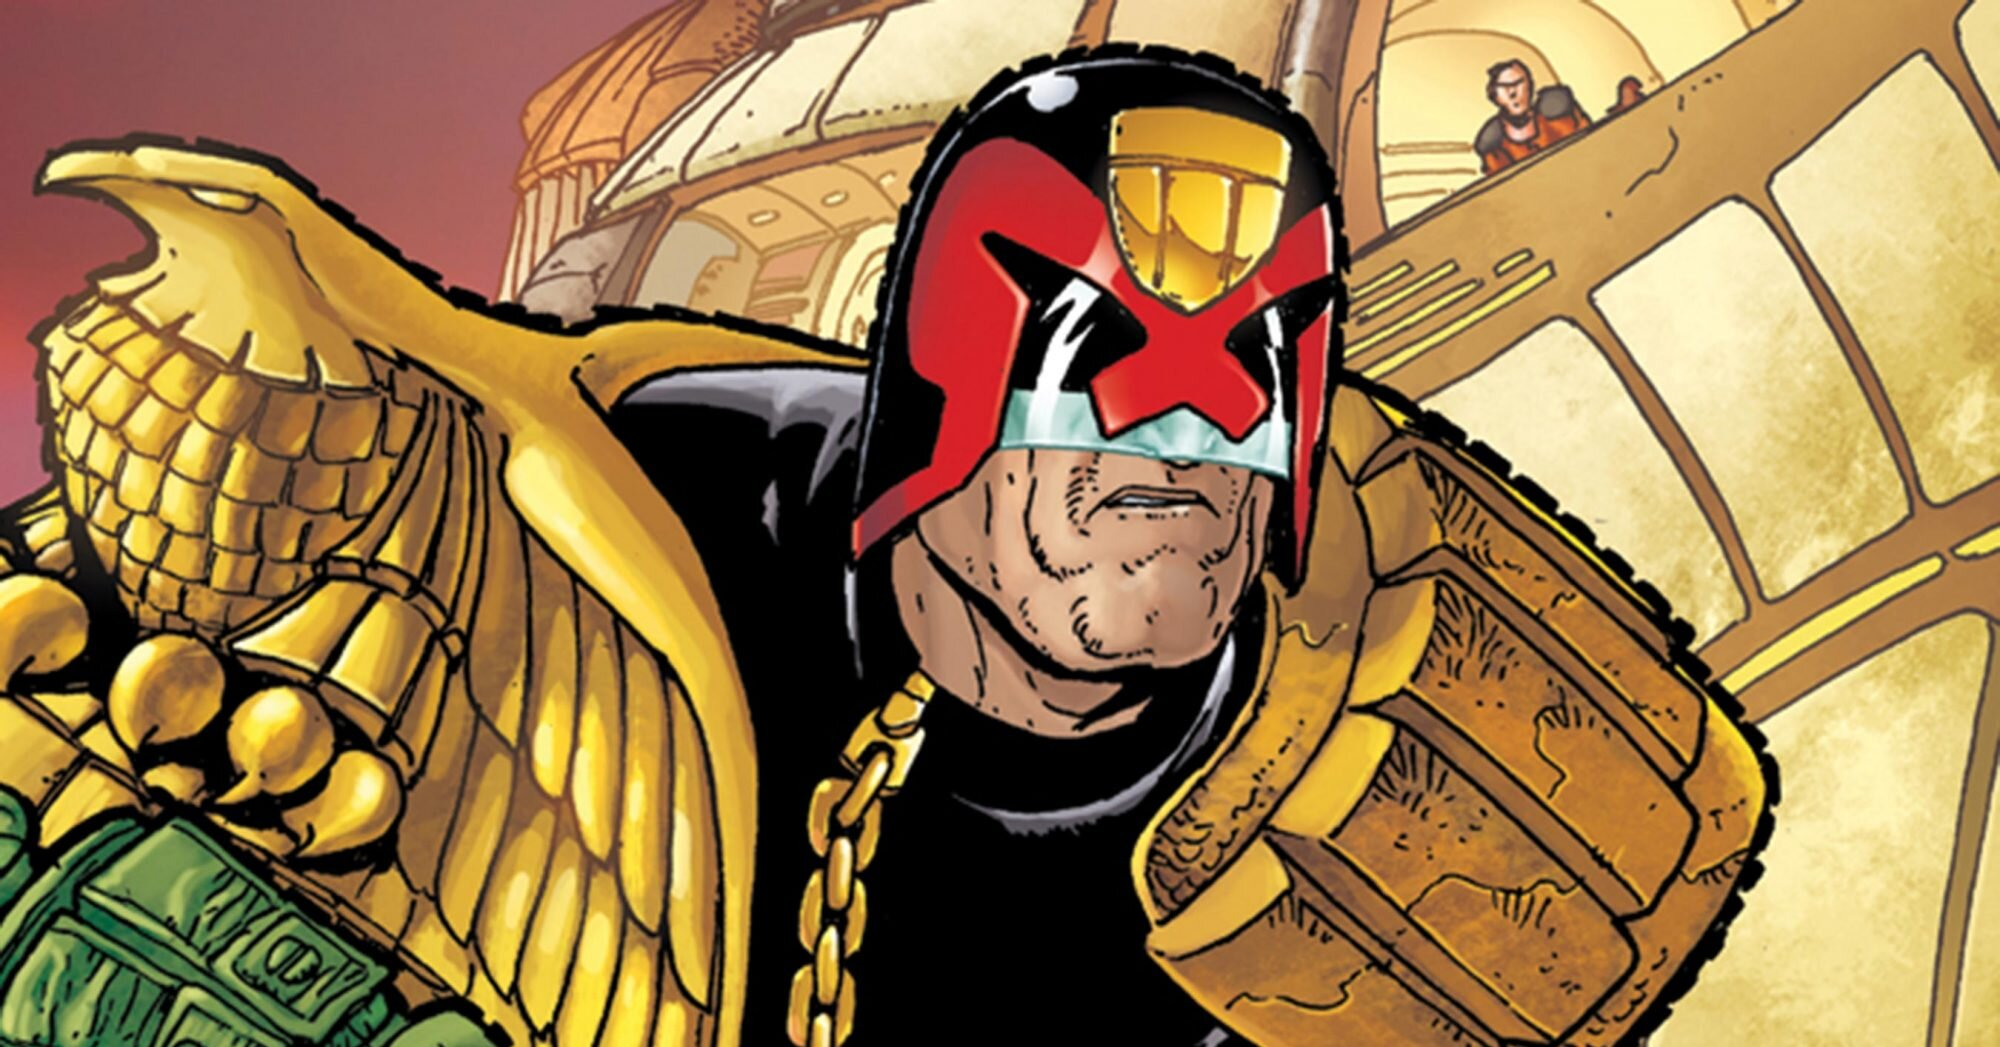 Judge Dredd immersive experience to open in London next spring